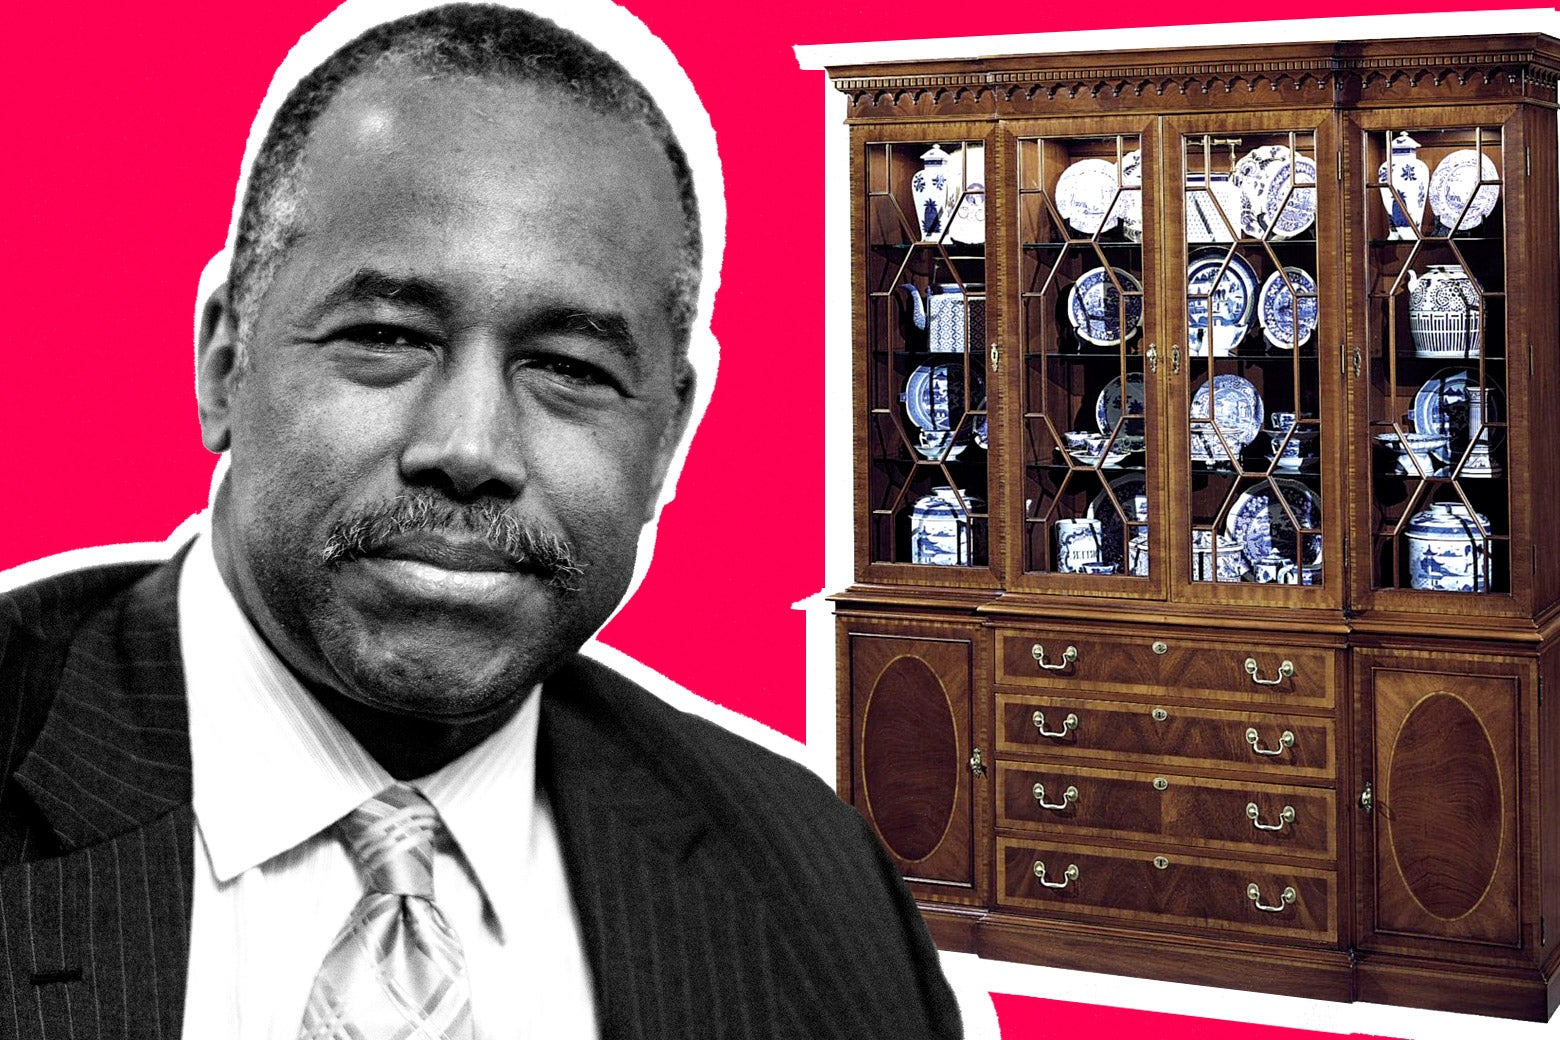 Ben Carson in front of expensive furniture.